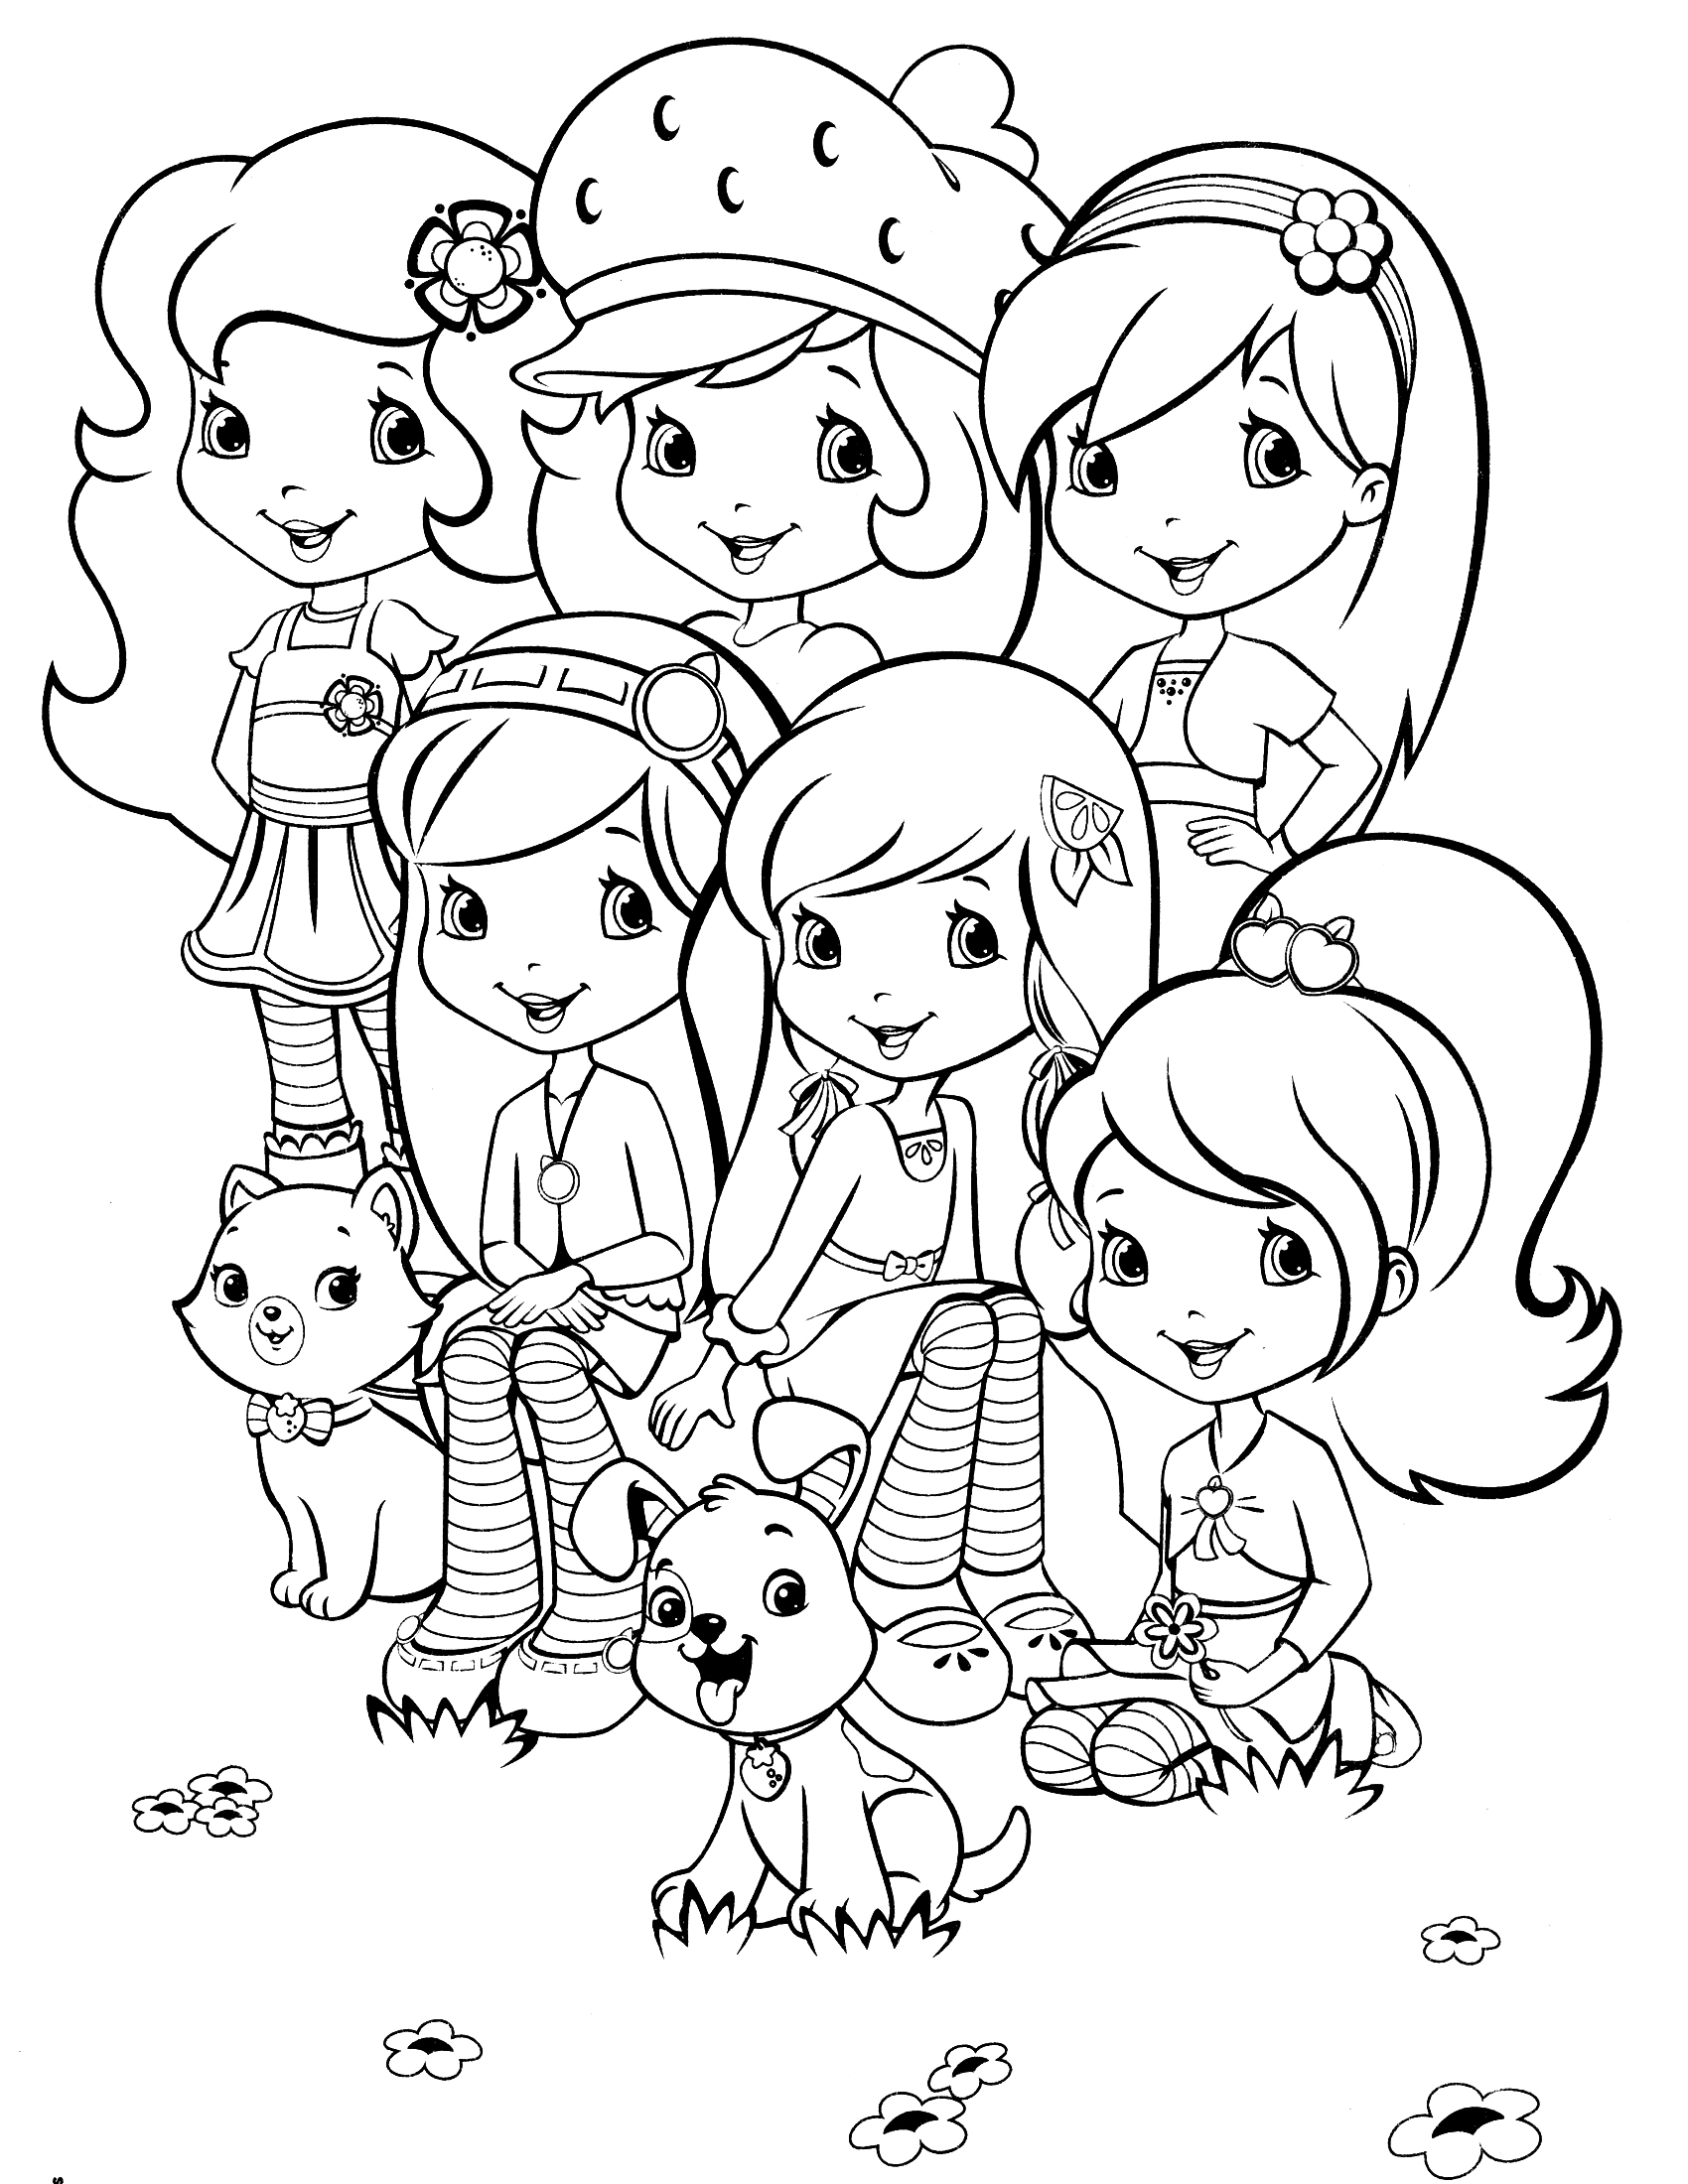 Free Printable Coloring Pages Of Strawberry Shortcake And Friends